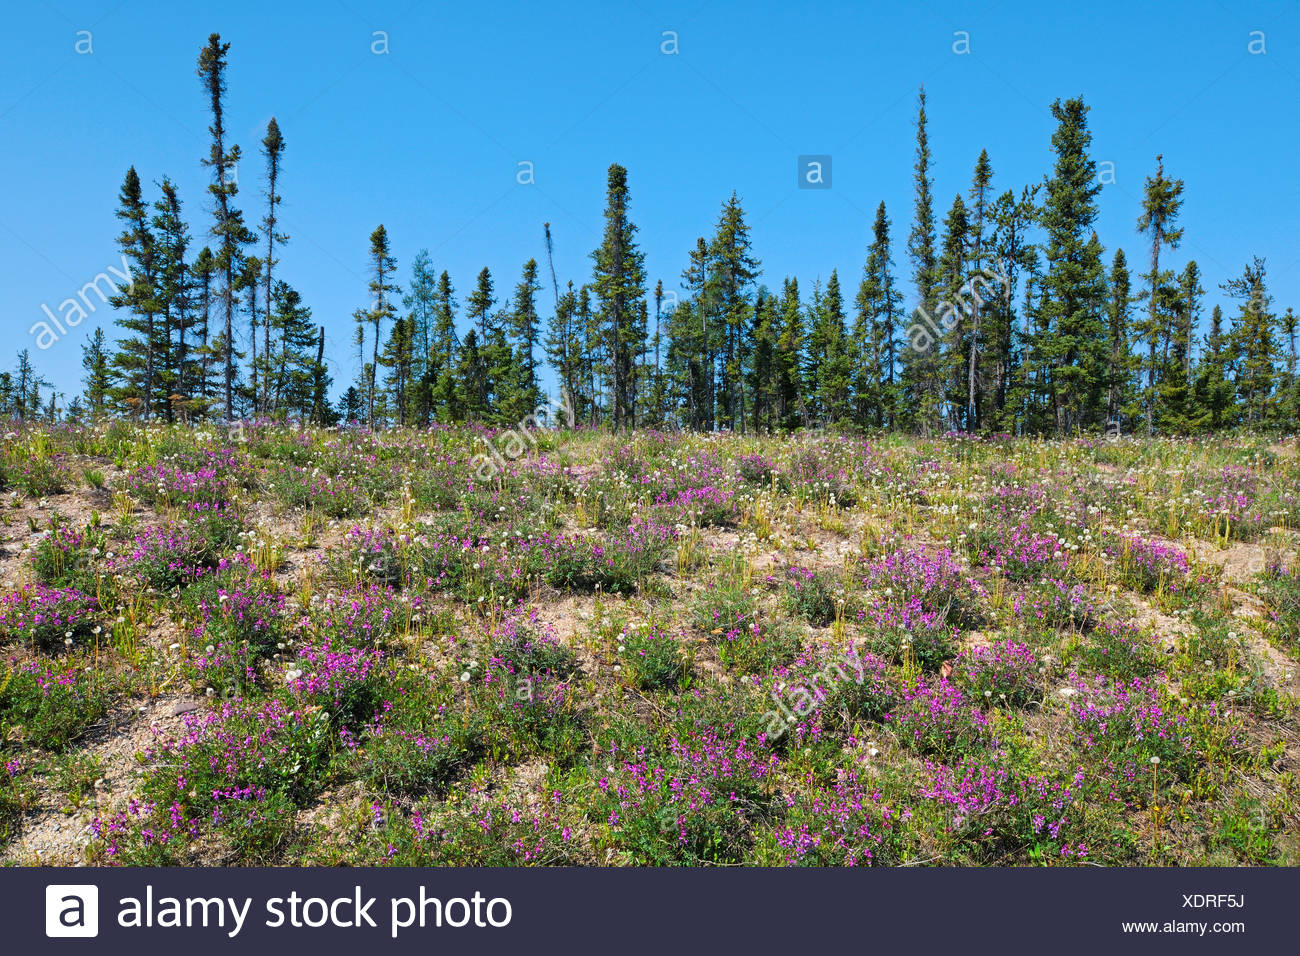 Wild Sweet Pea and black spruce trees in boreal forest  Yellowknife Highway near Fort Providence Northwest Territories Canada - Stock Image